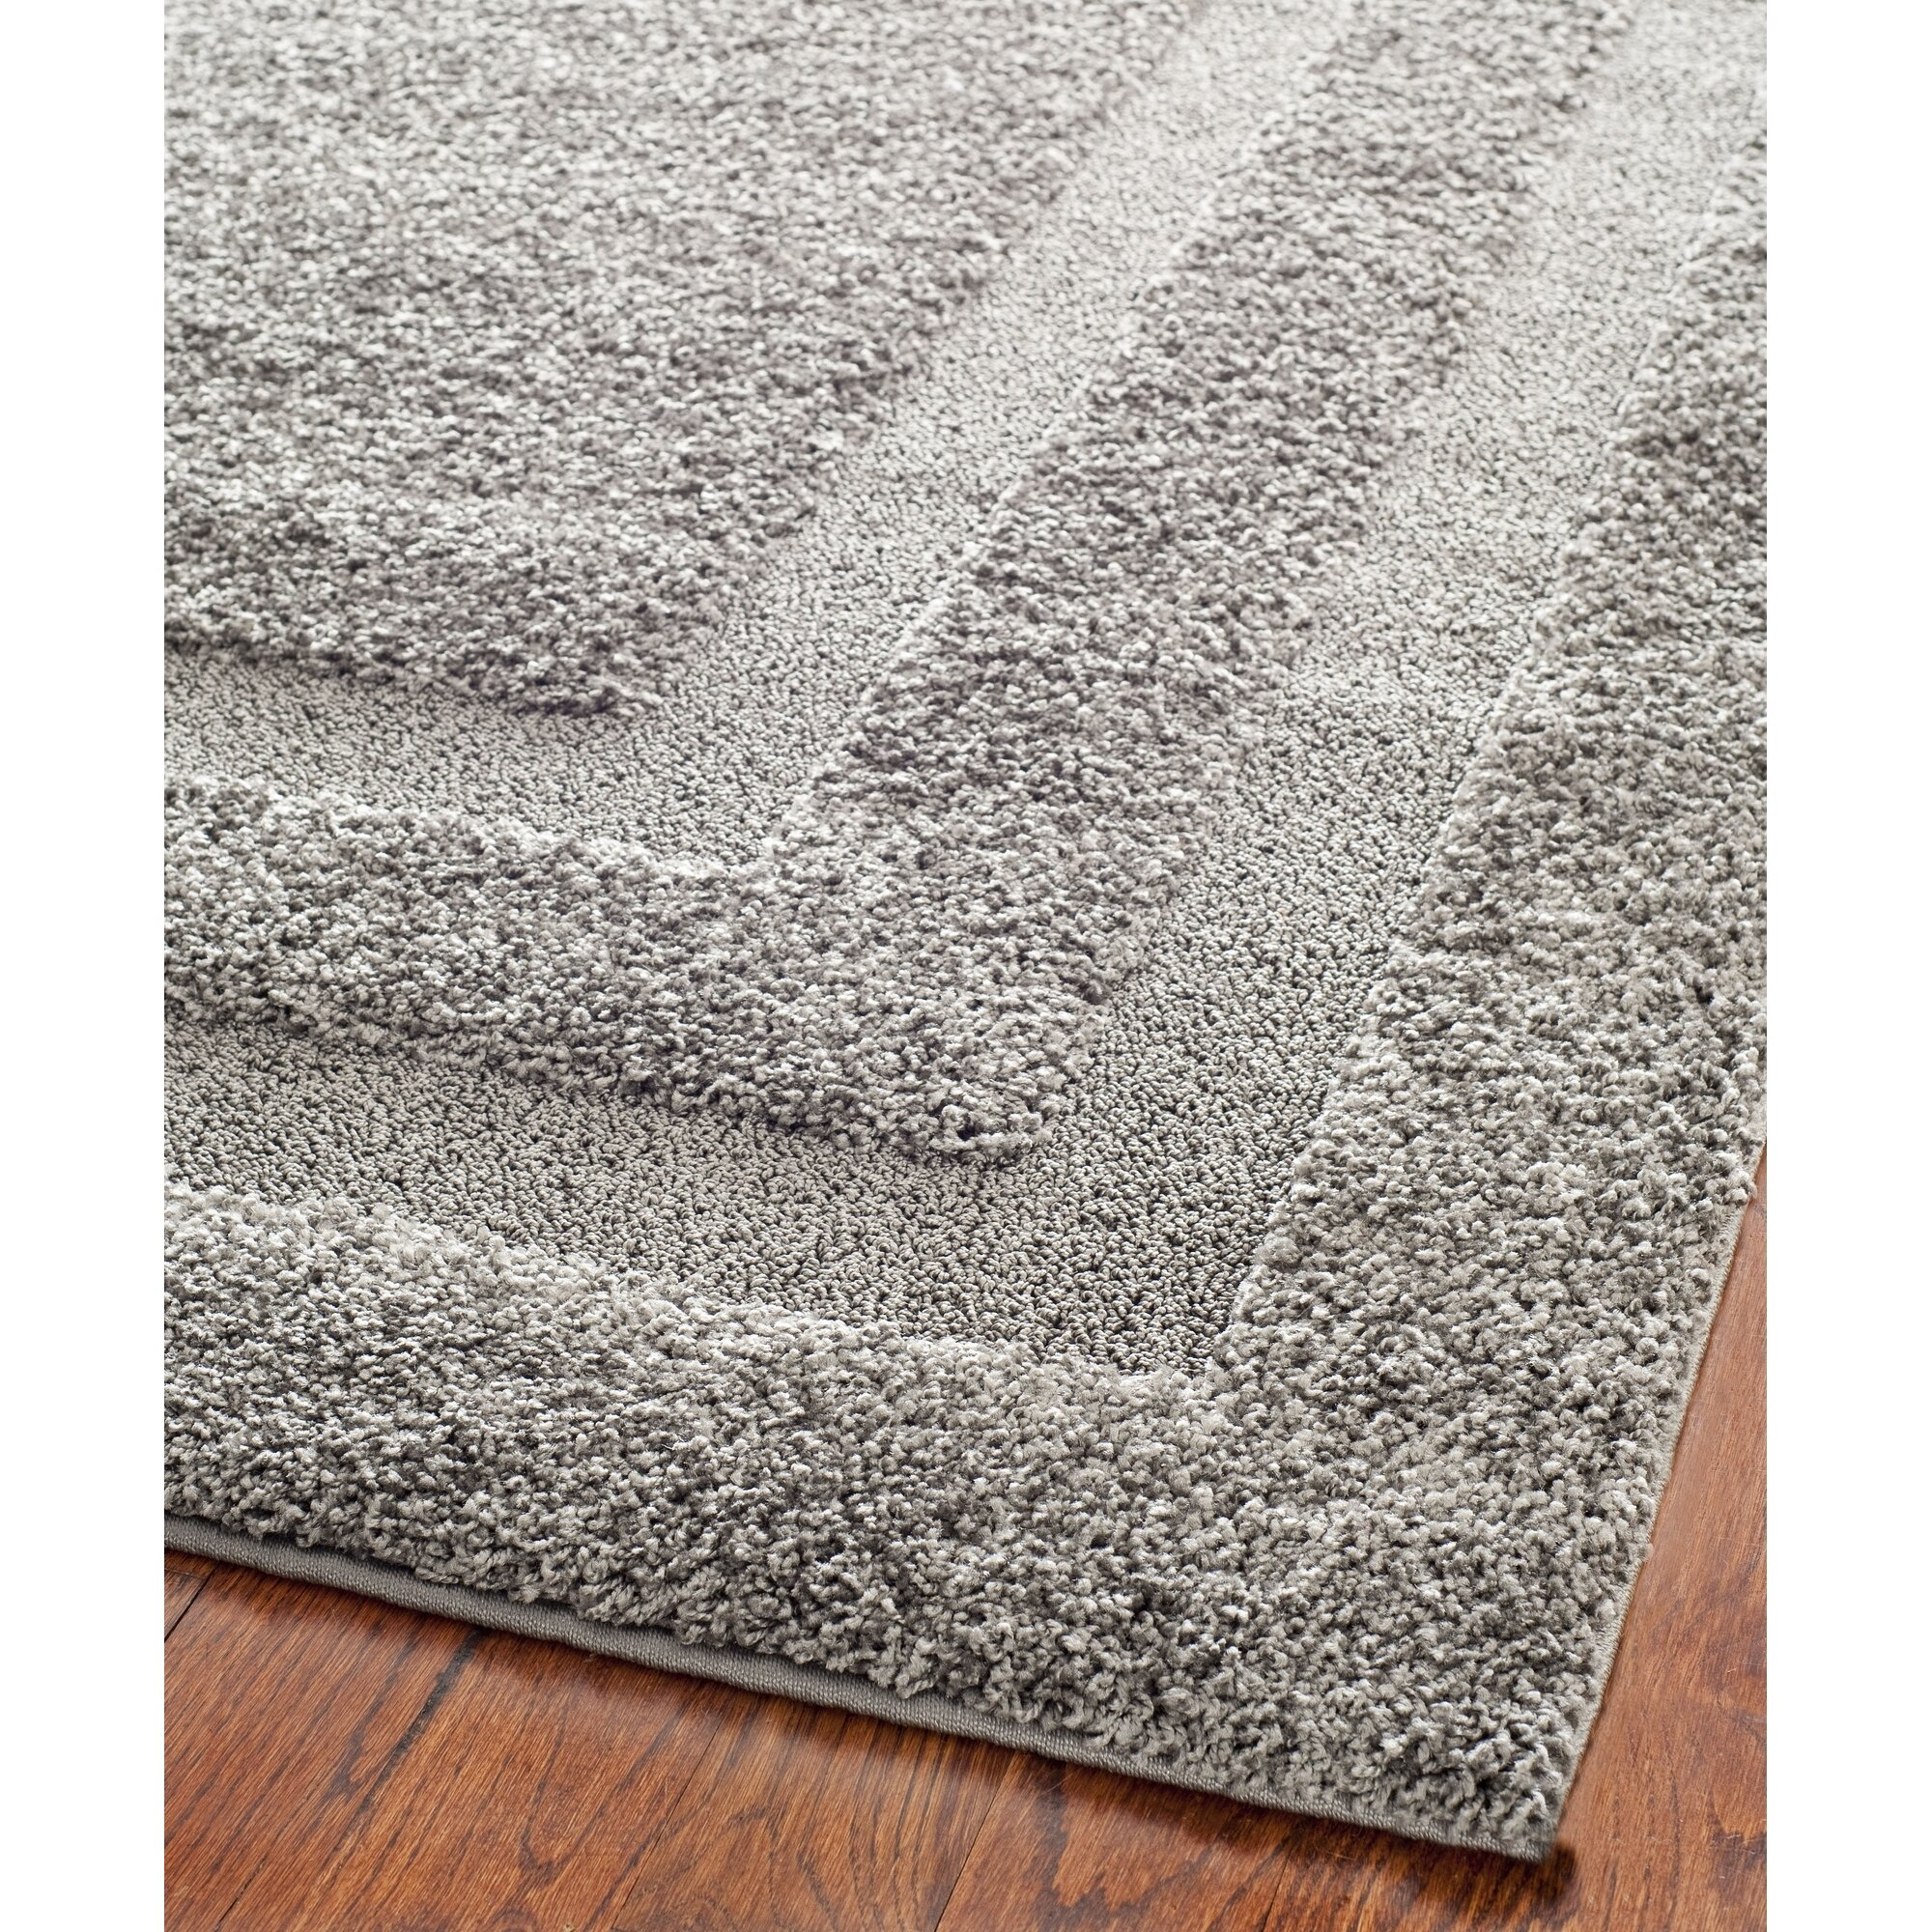 safavieh florida shag gray area rug reviews wayfair